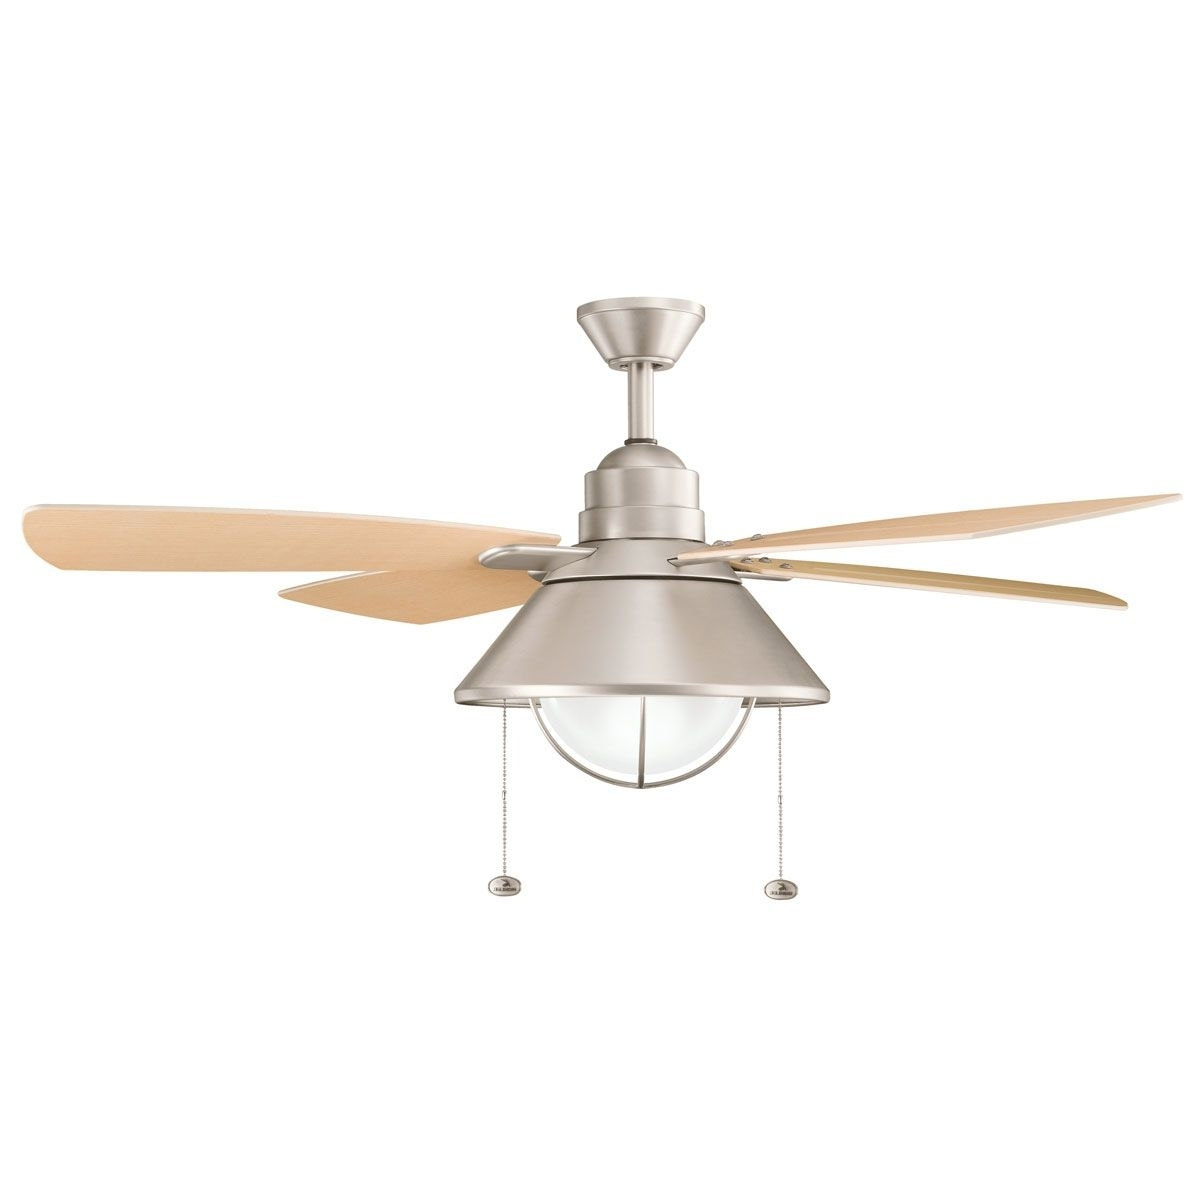 Ideas For The With Regard To Favorite Nautical Outdoor Ceiling Fans With Lights (Gallery 7 of 20)